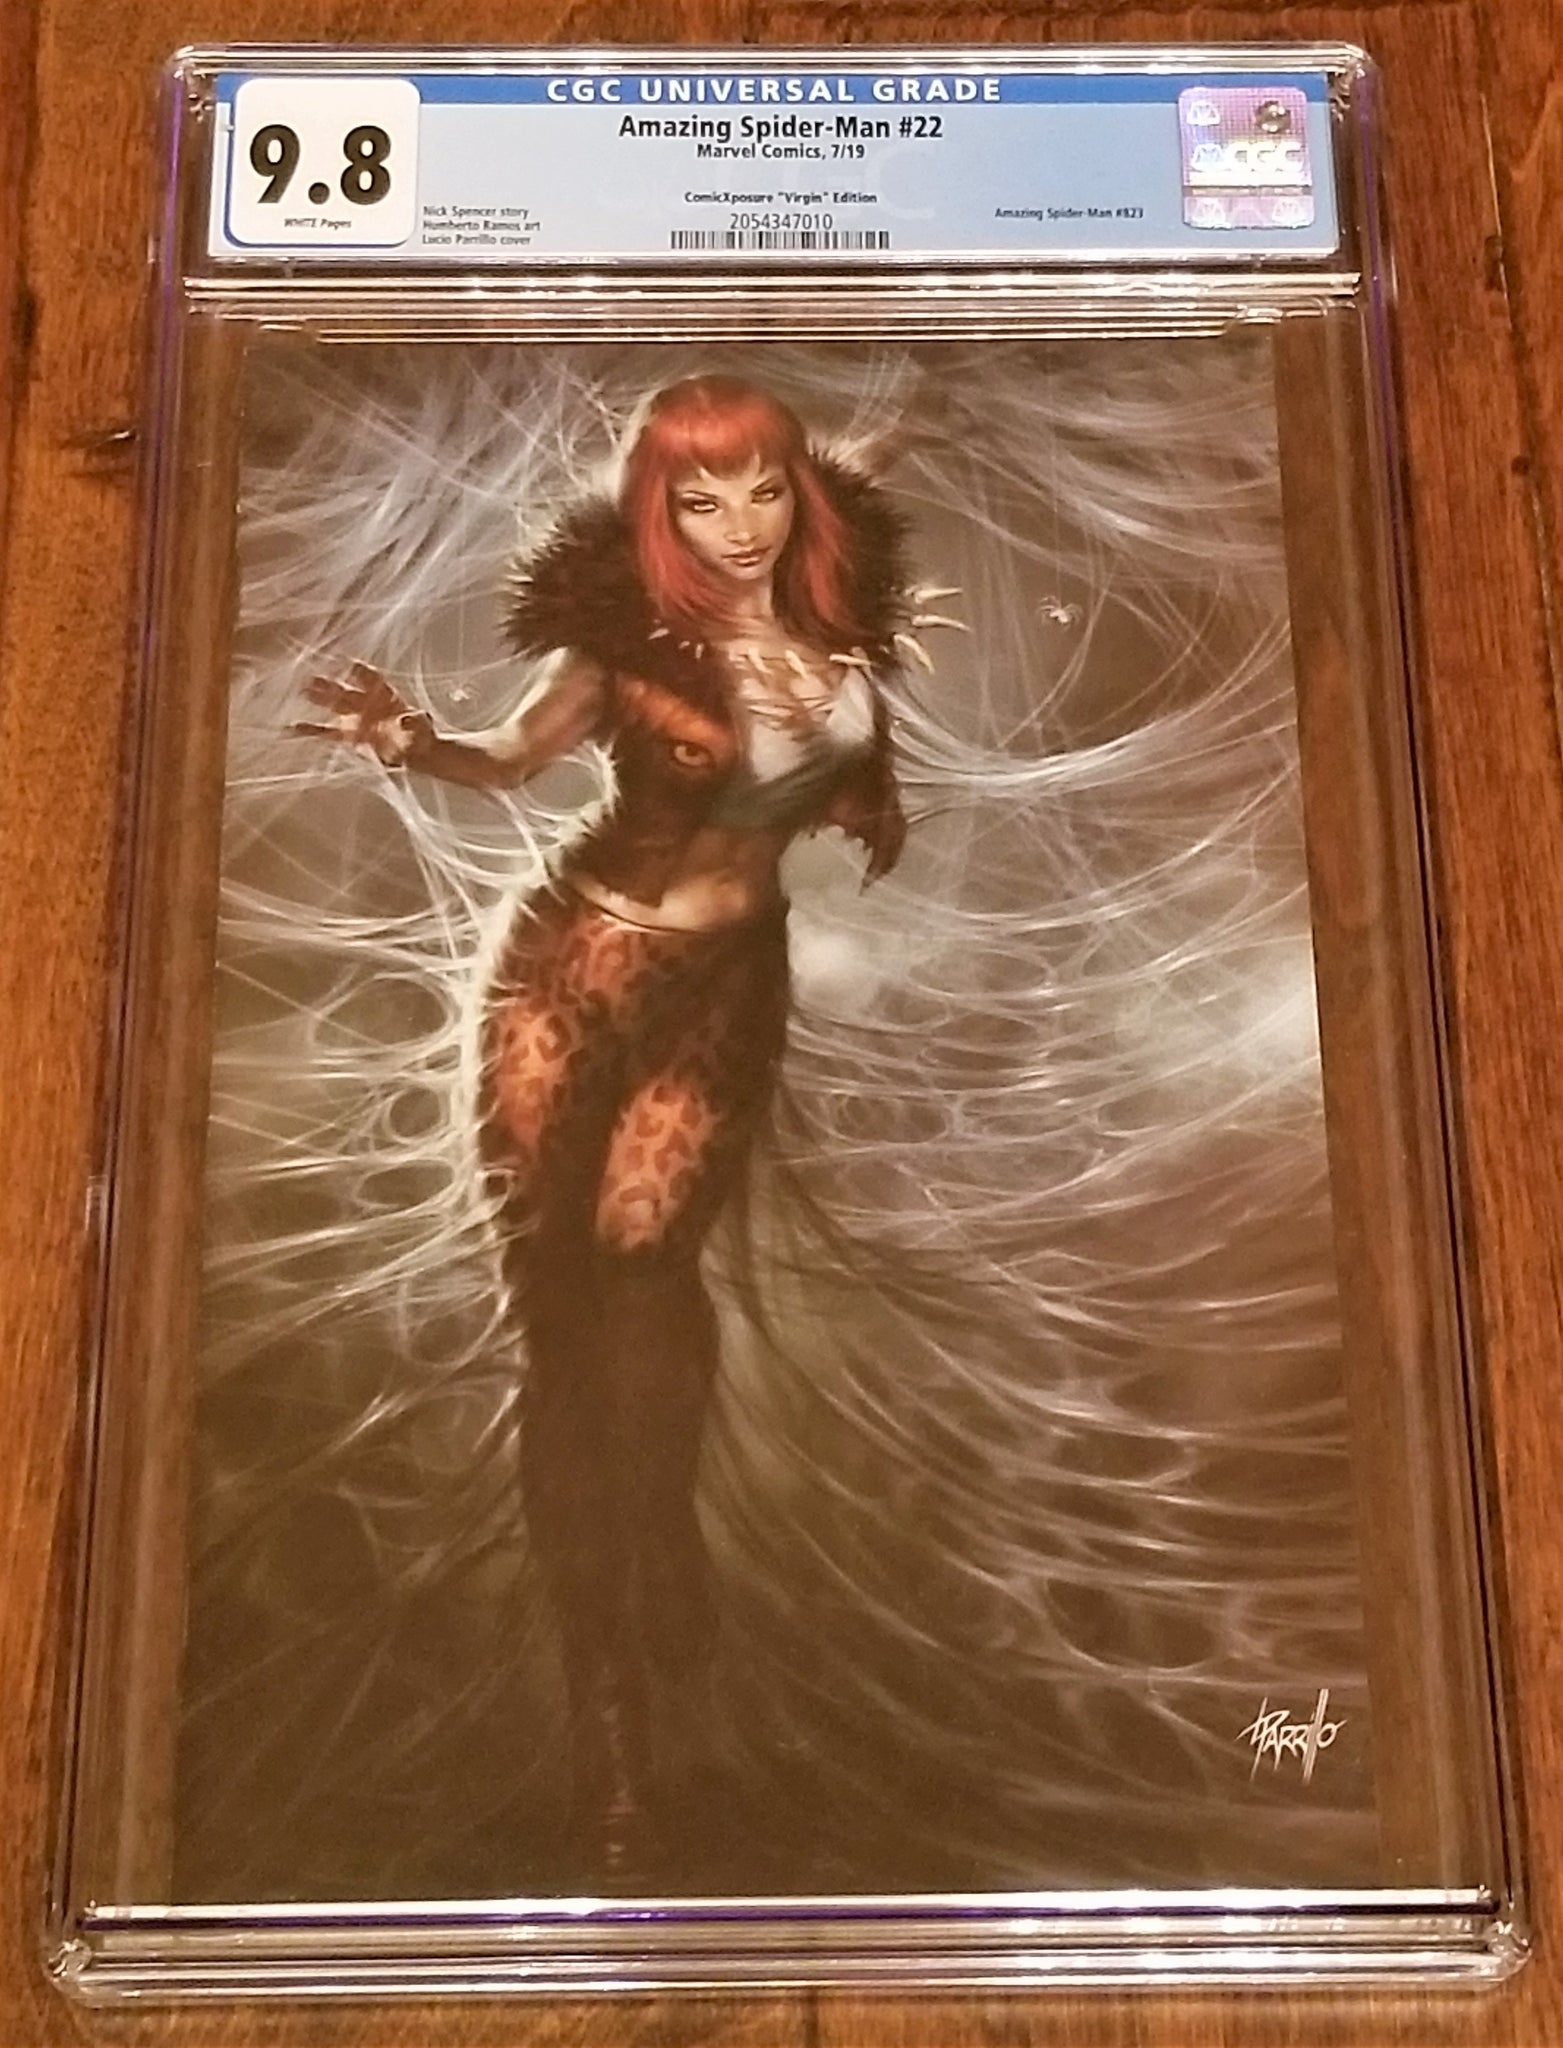 Amazing Spider-man 22 Spiderman Lucio Parrillo Variant DC Comics Marvel Comics Venom Carnage Mary Jane East Side Comics Comicxposure Virgin Exclusive cgc